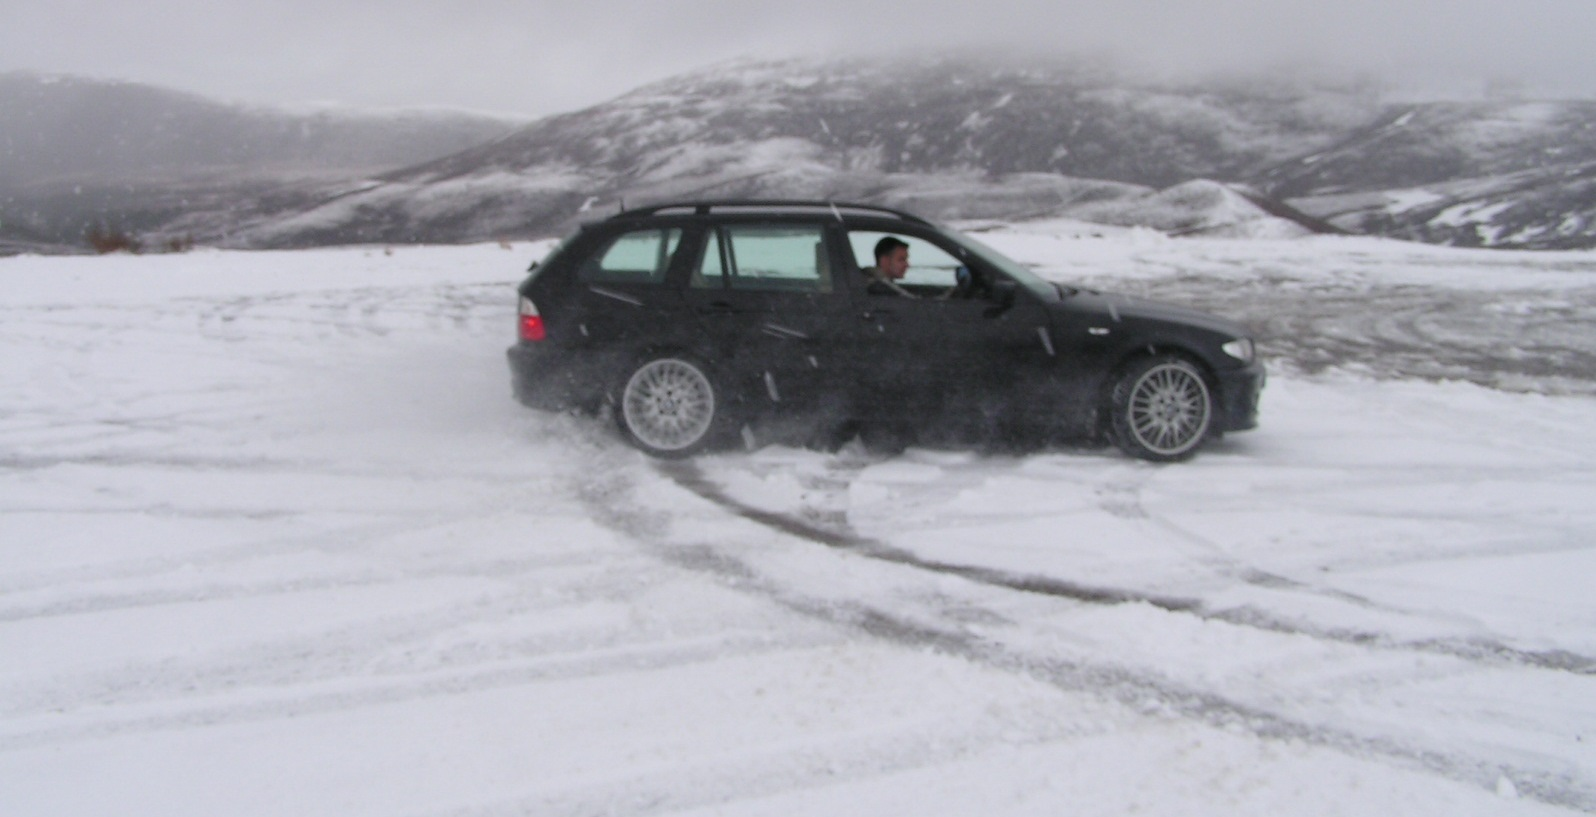 330d in Scotland on snow